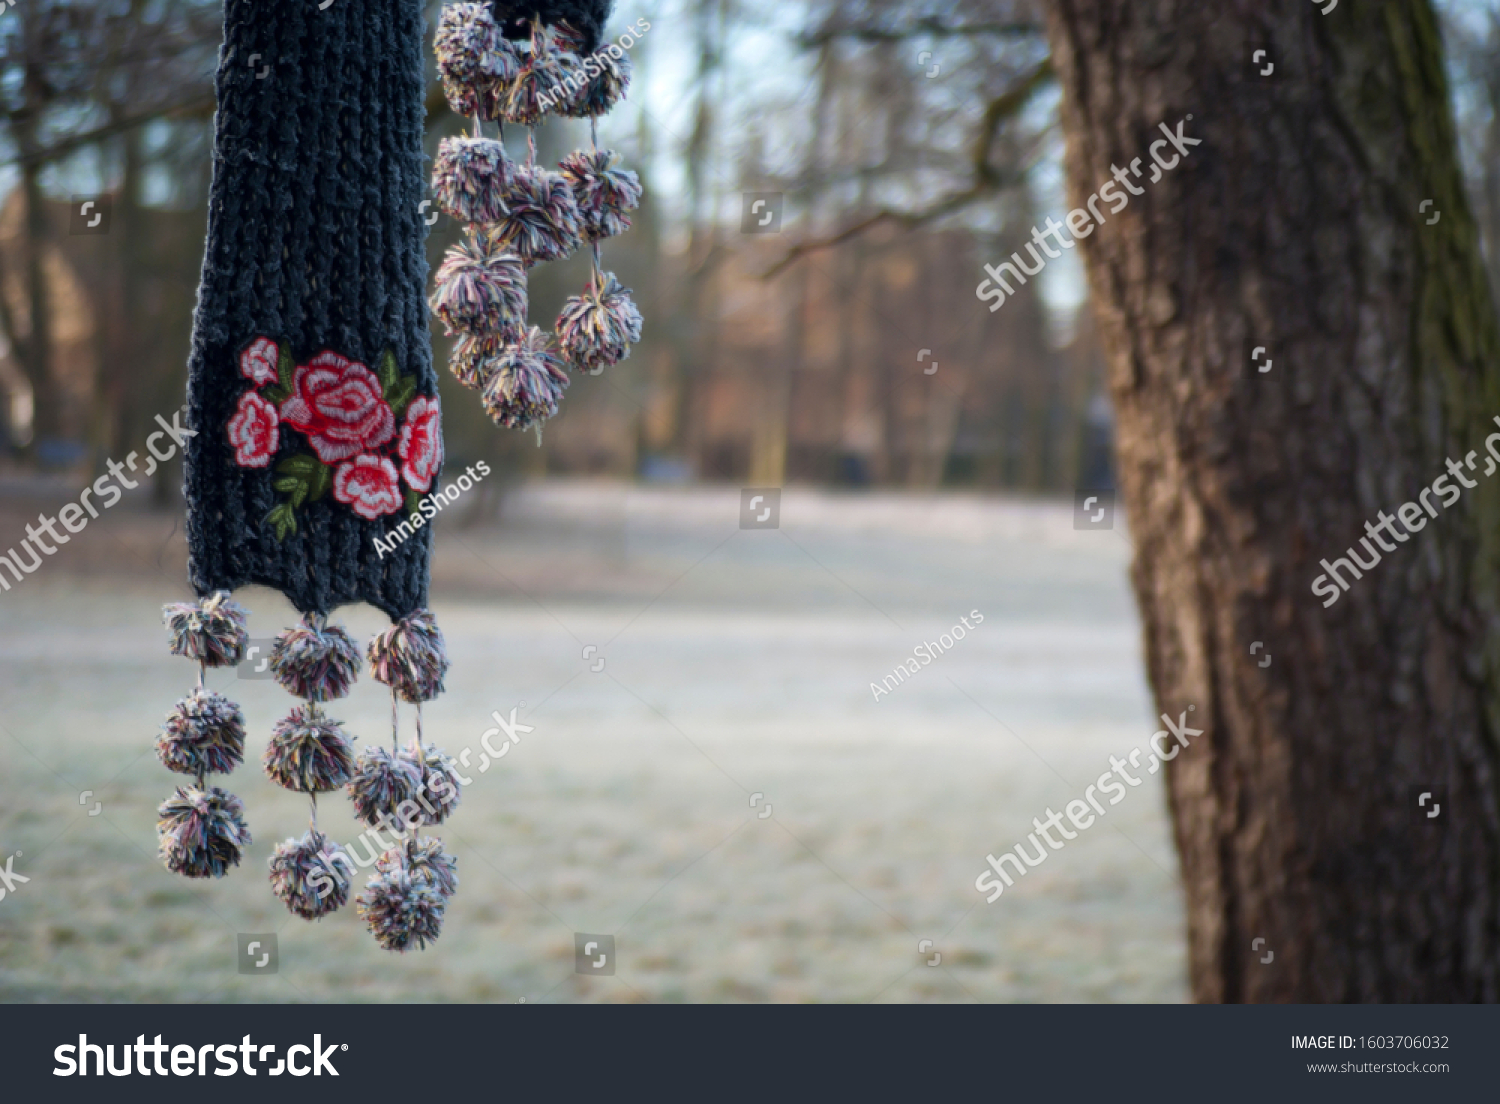 stock-photo-the-end-of-winter-it-s-time-